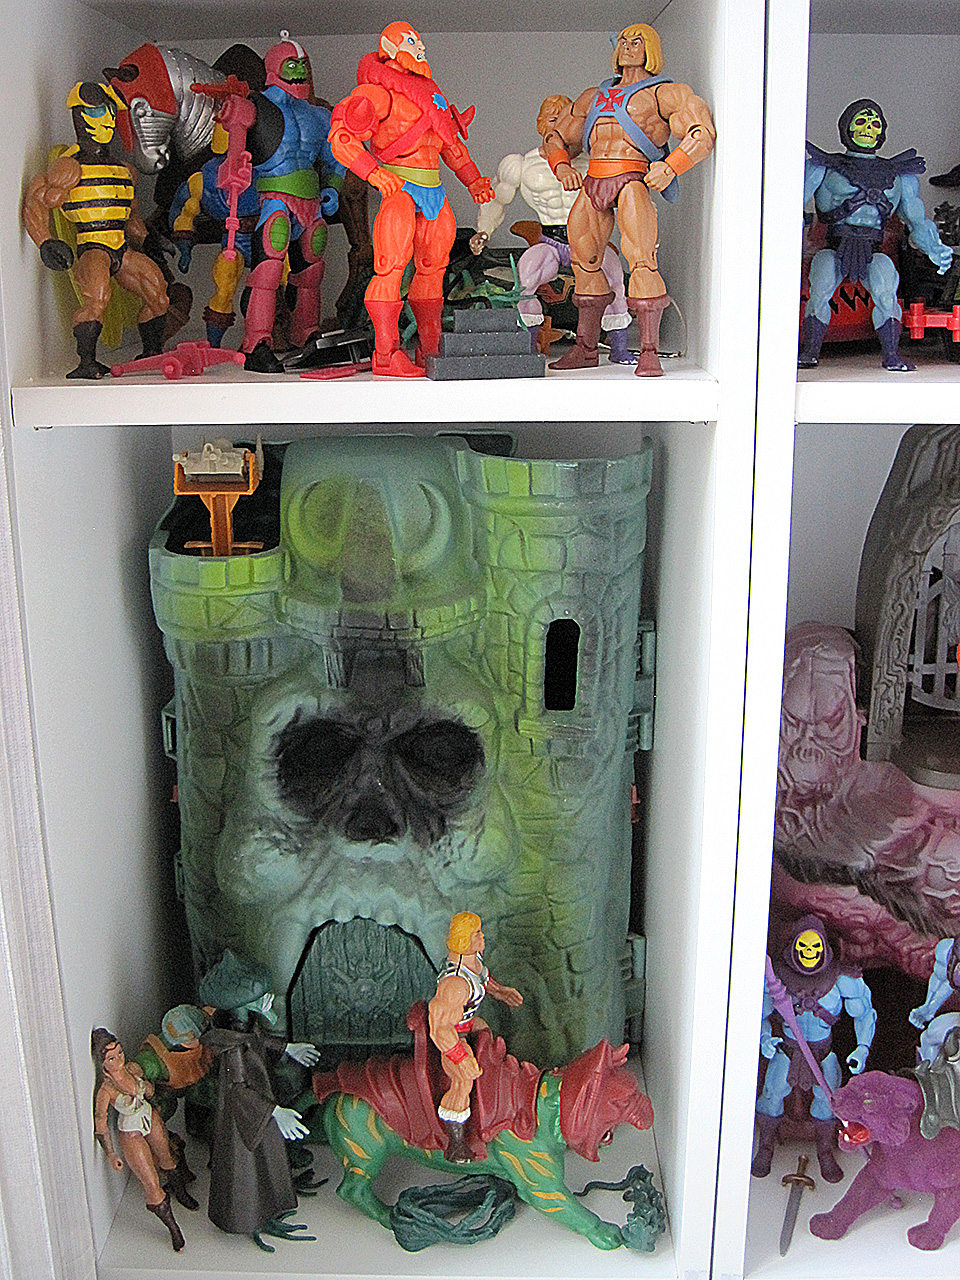 He-Man and the Masters of the Universe Action Figures Toys